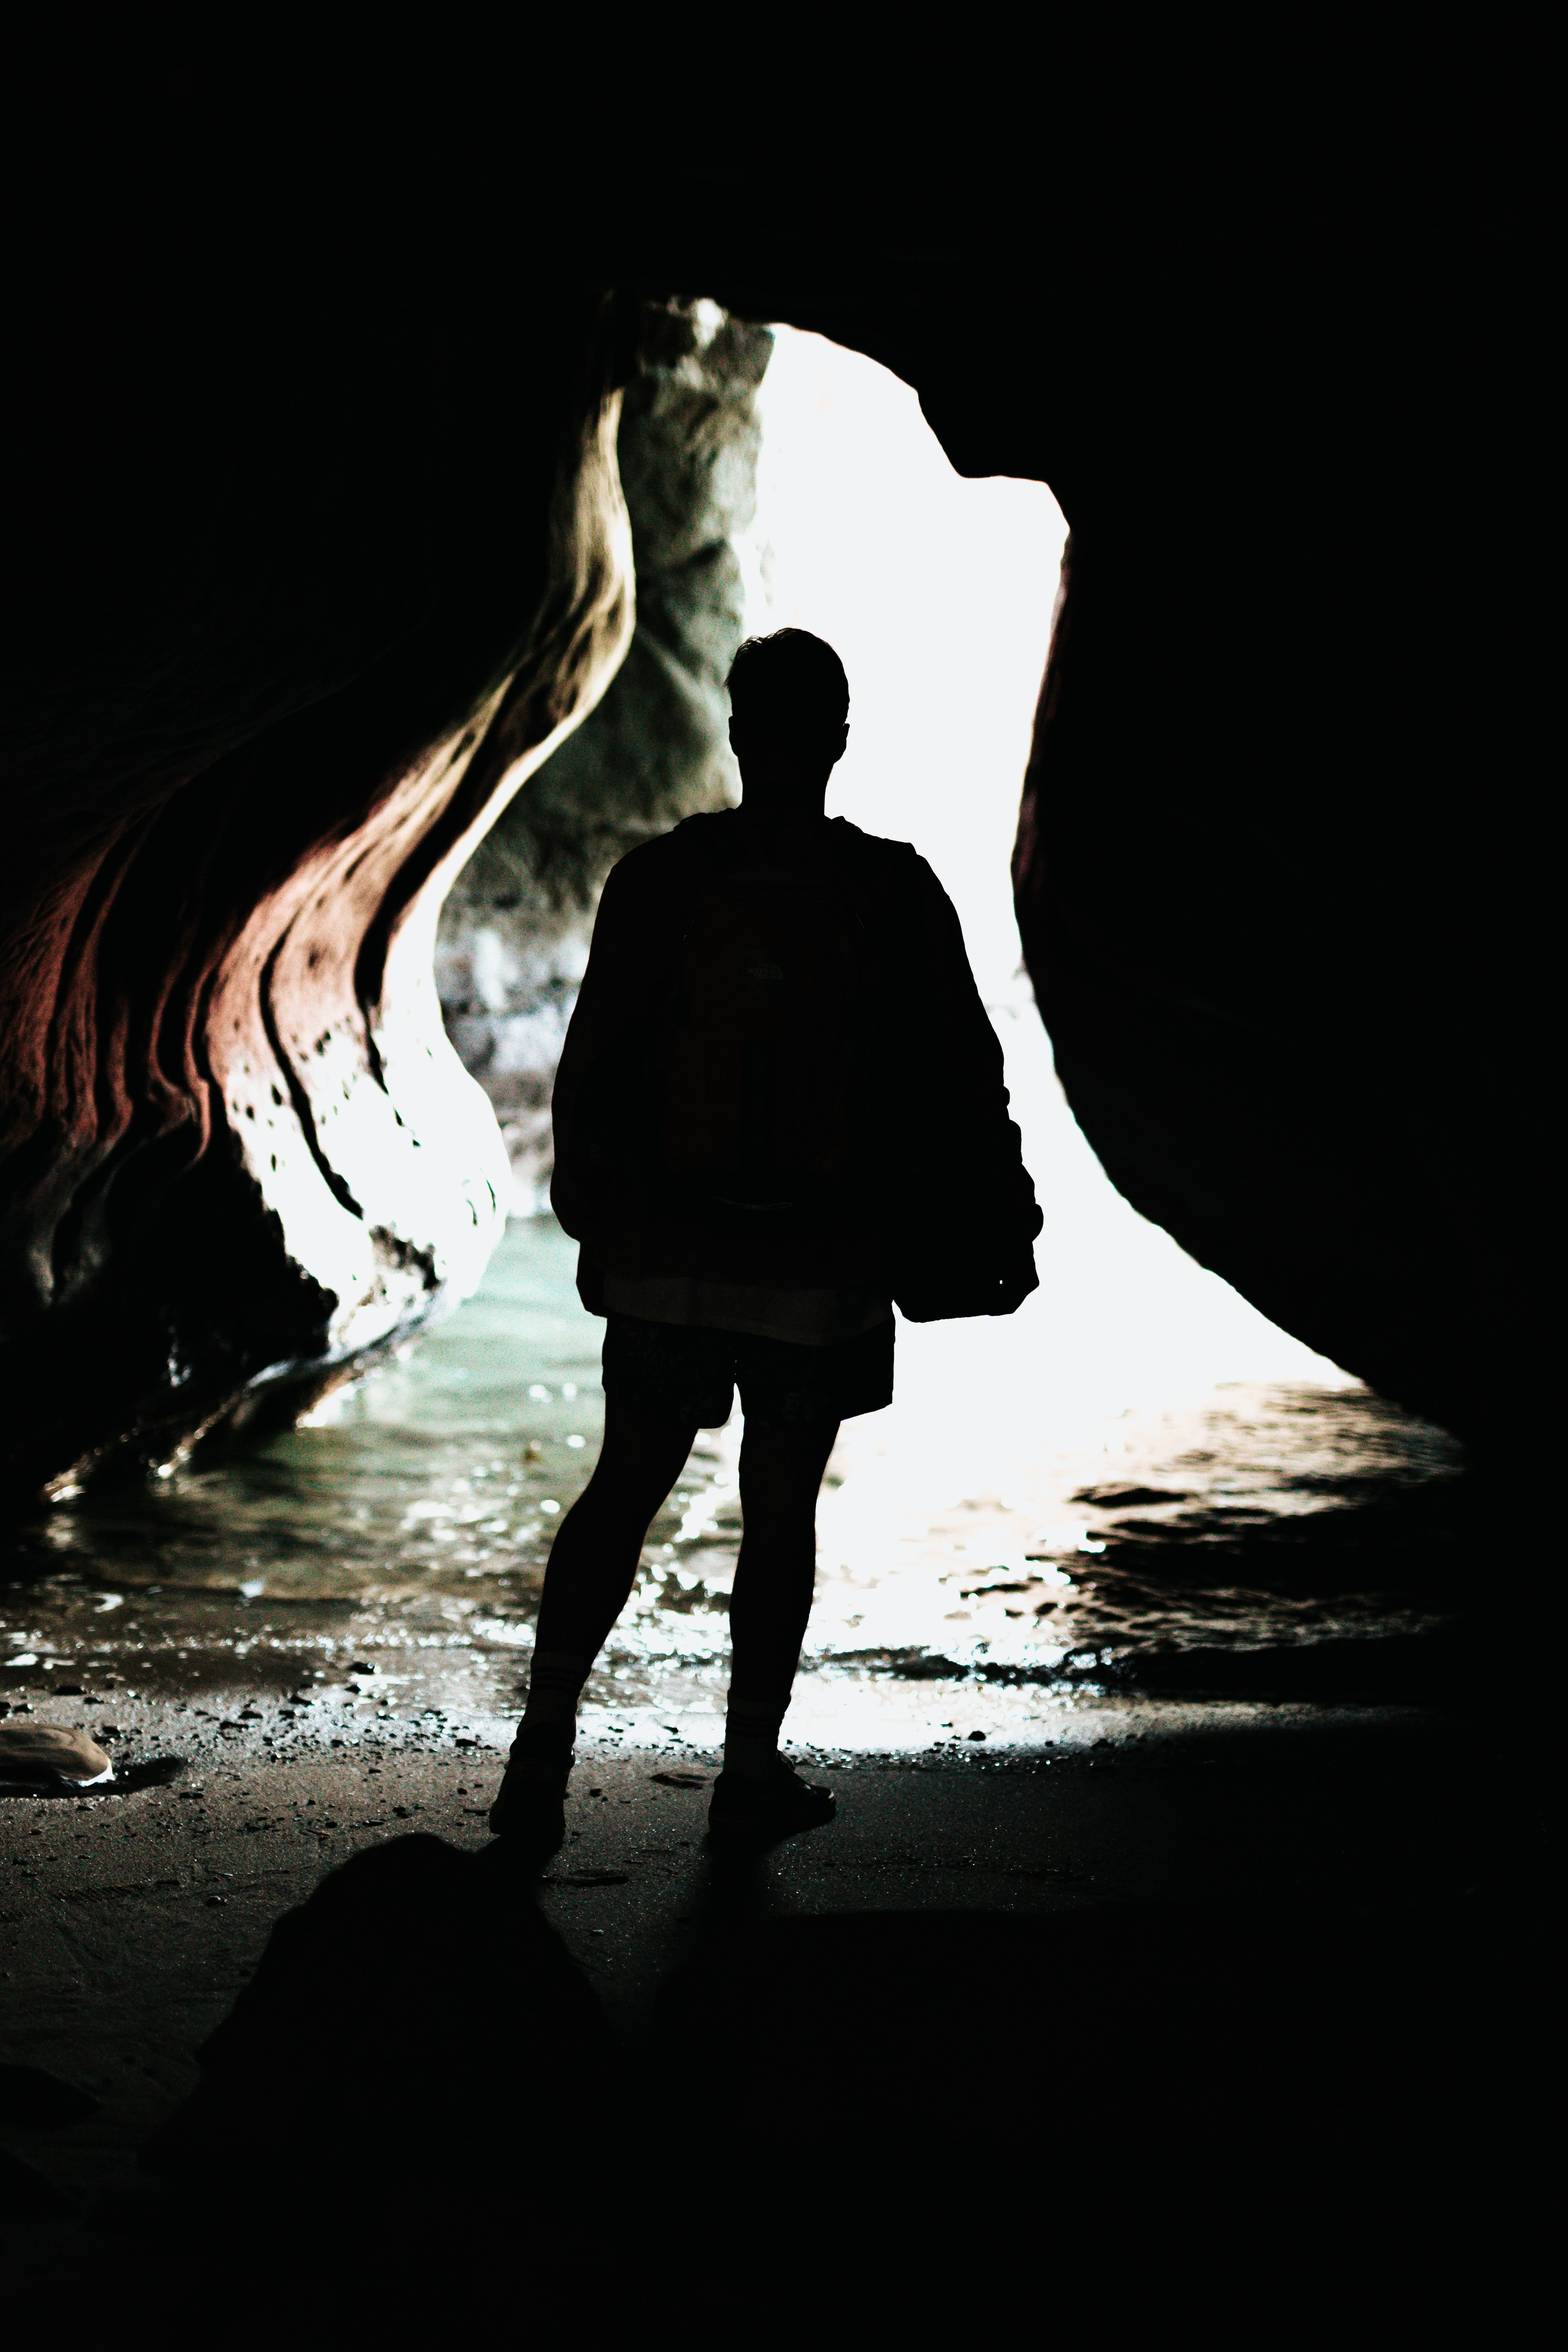 silhouette photo of person standing in front of blue body of water inside cave during daytime